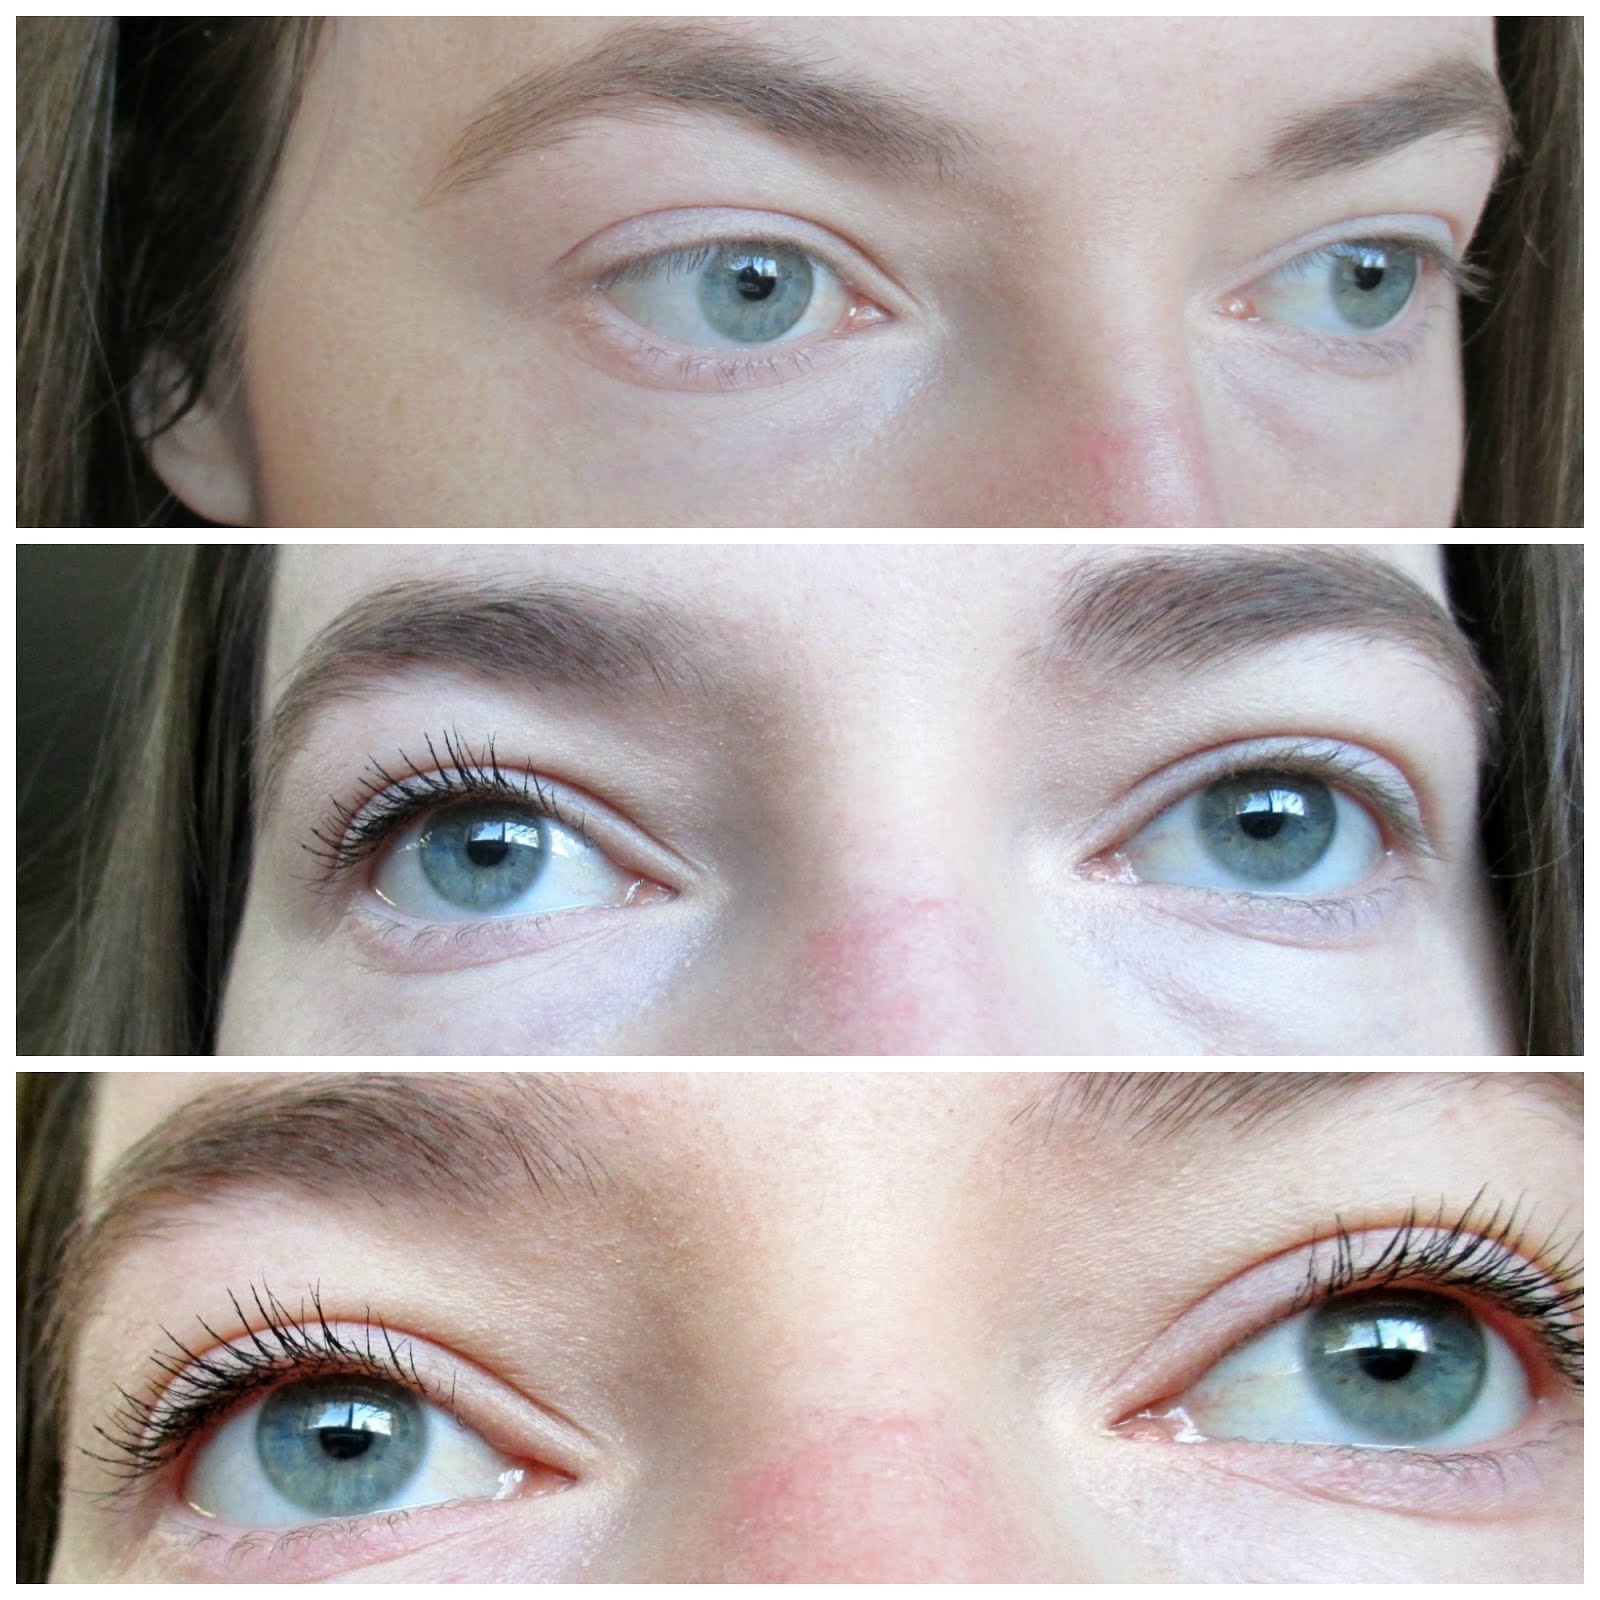 bcde4ff8d11 Top photo: No mascara. Middle photo: Length mascara on left side only, none  on right. Bottom photot: Both steps on both eyes